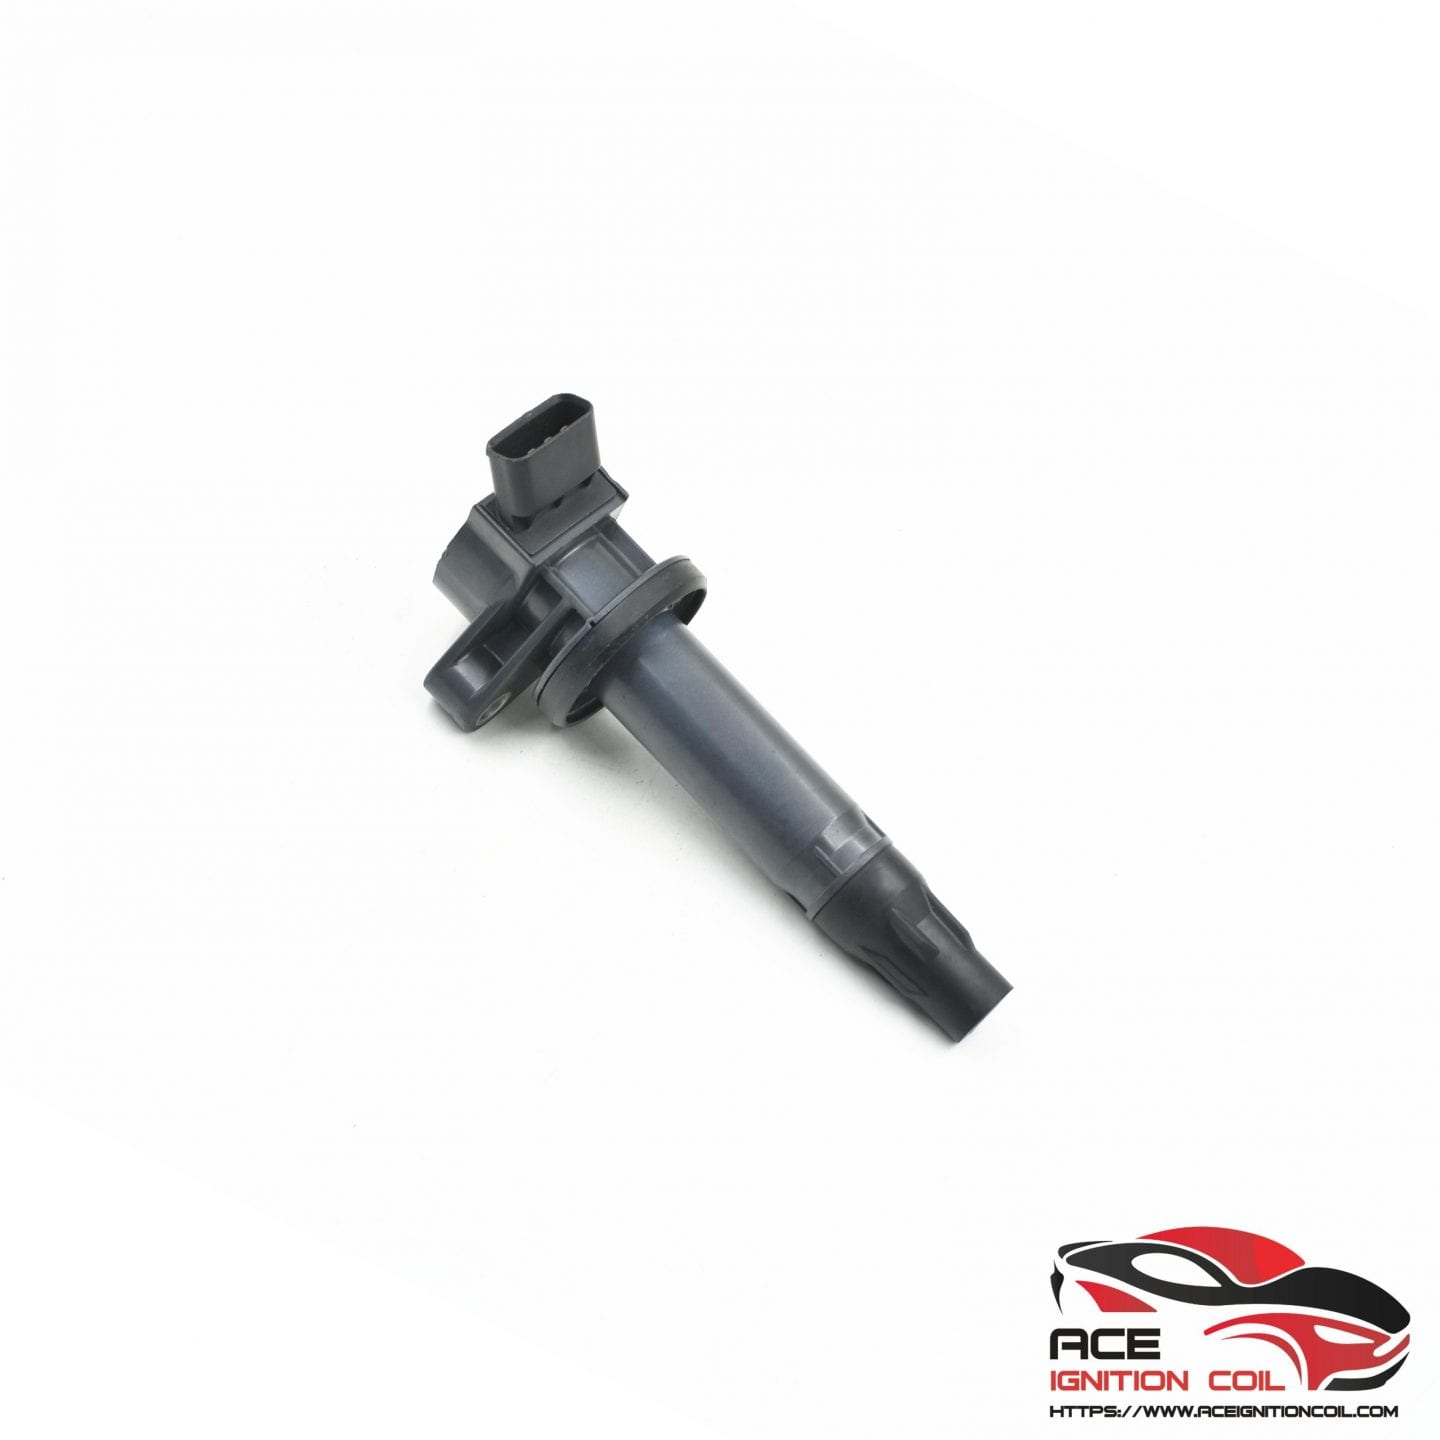 DAIHATSU replacement ignition coil 19500-B2030